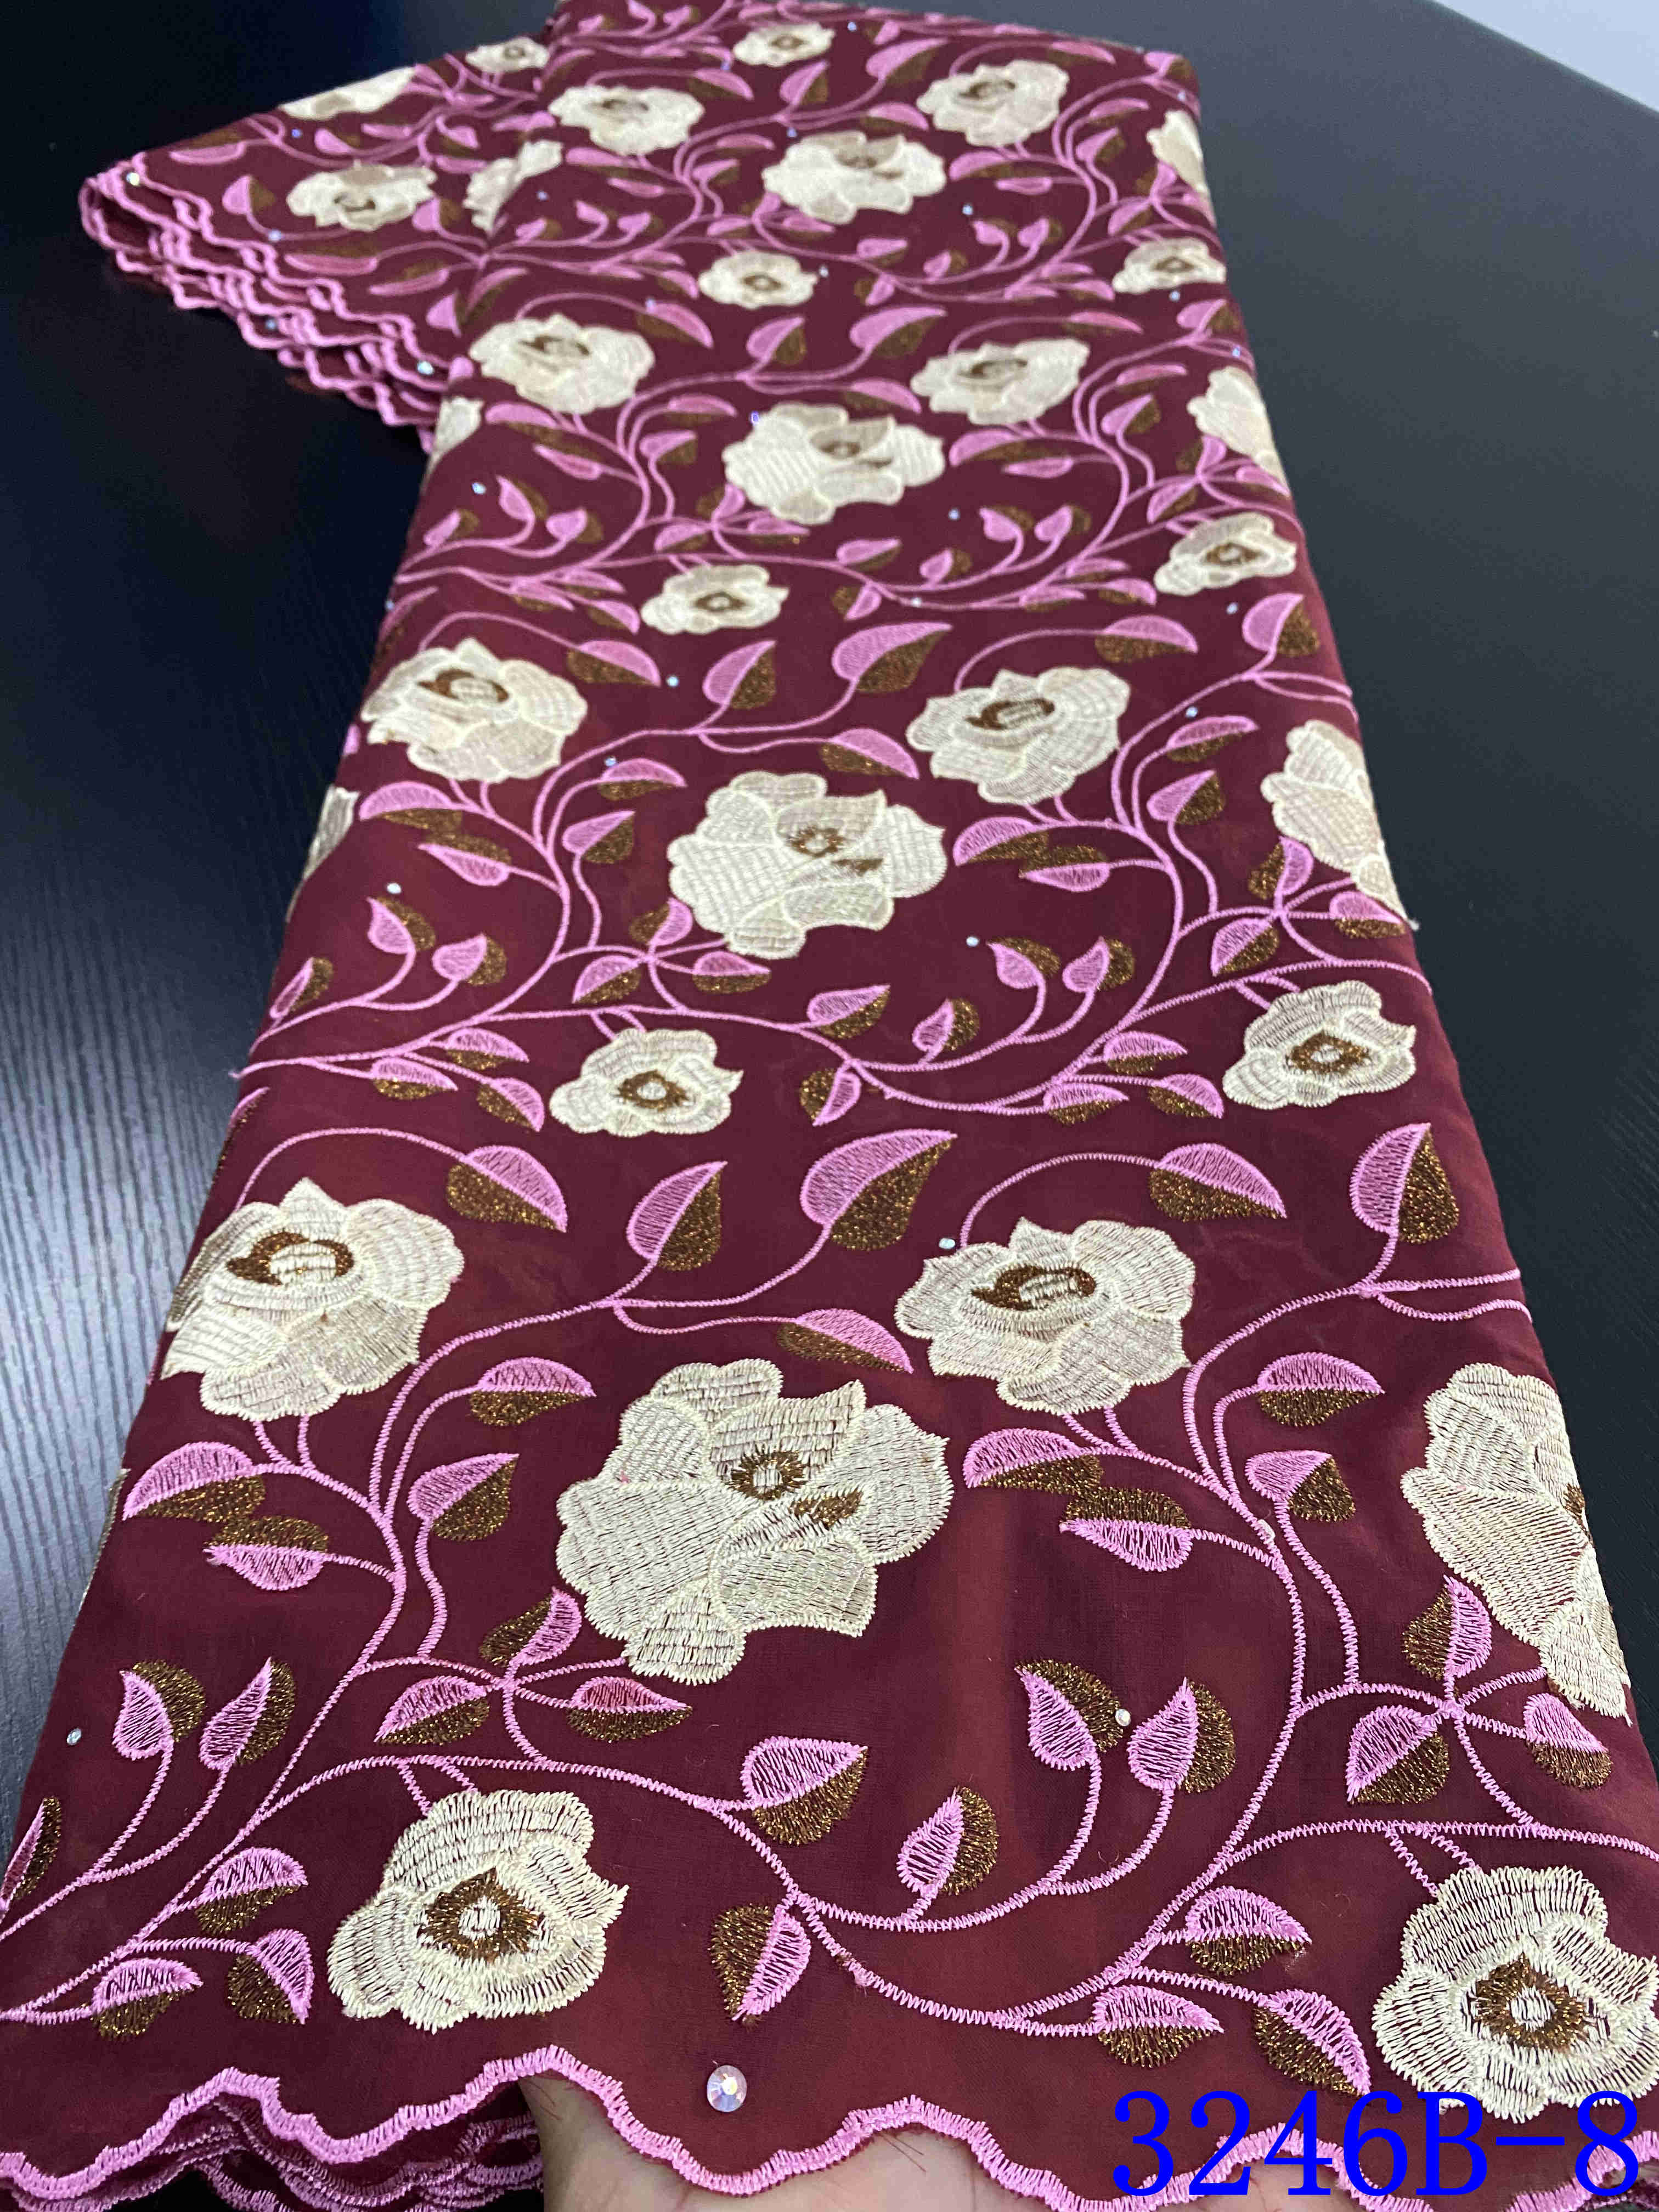 Nigerian Voile Laces Fabrics 2020 High Quality Lace African Lace Fabric For Wedding Dress French Cotton Lace Material YA3246B-8